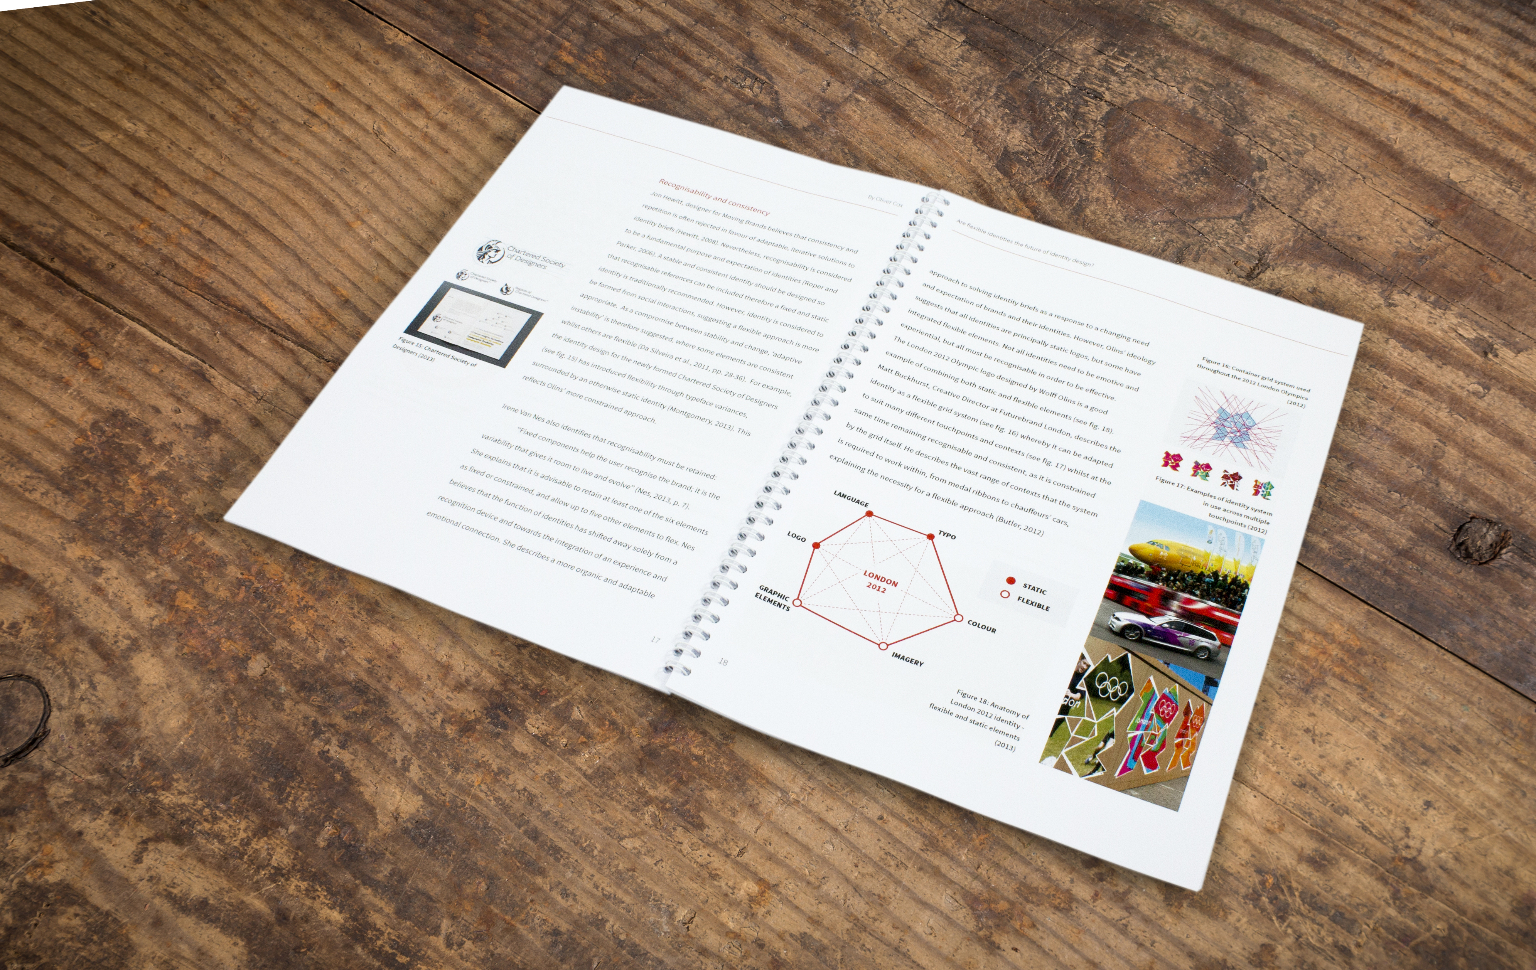 thesis printing and binding reading Masters bookbinding's online thesis binding and printing service allows you to create your thesis or dissertation to your precise specifications.